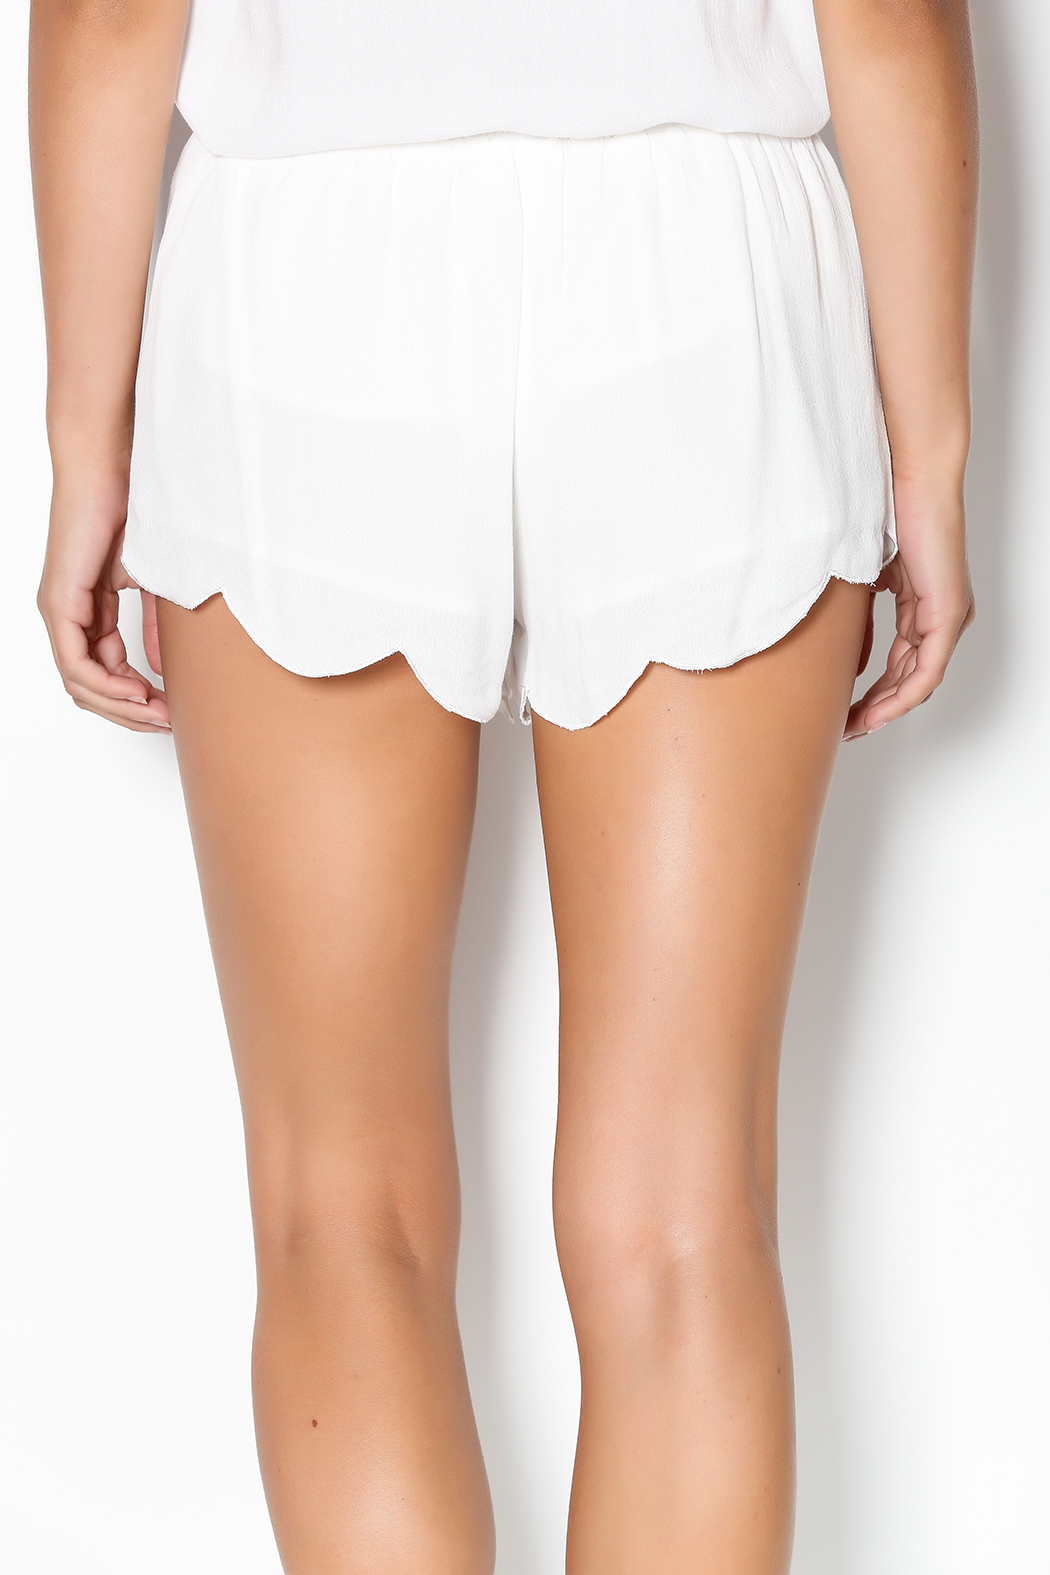 Olivaceous White Flowy Shorts from Miami by Allie & Chica — Shoptiques